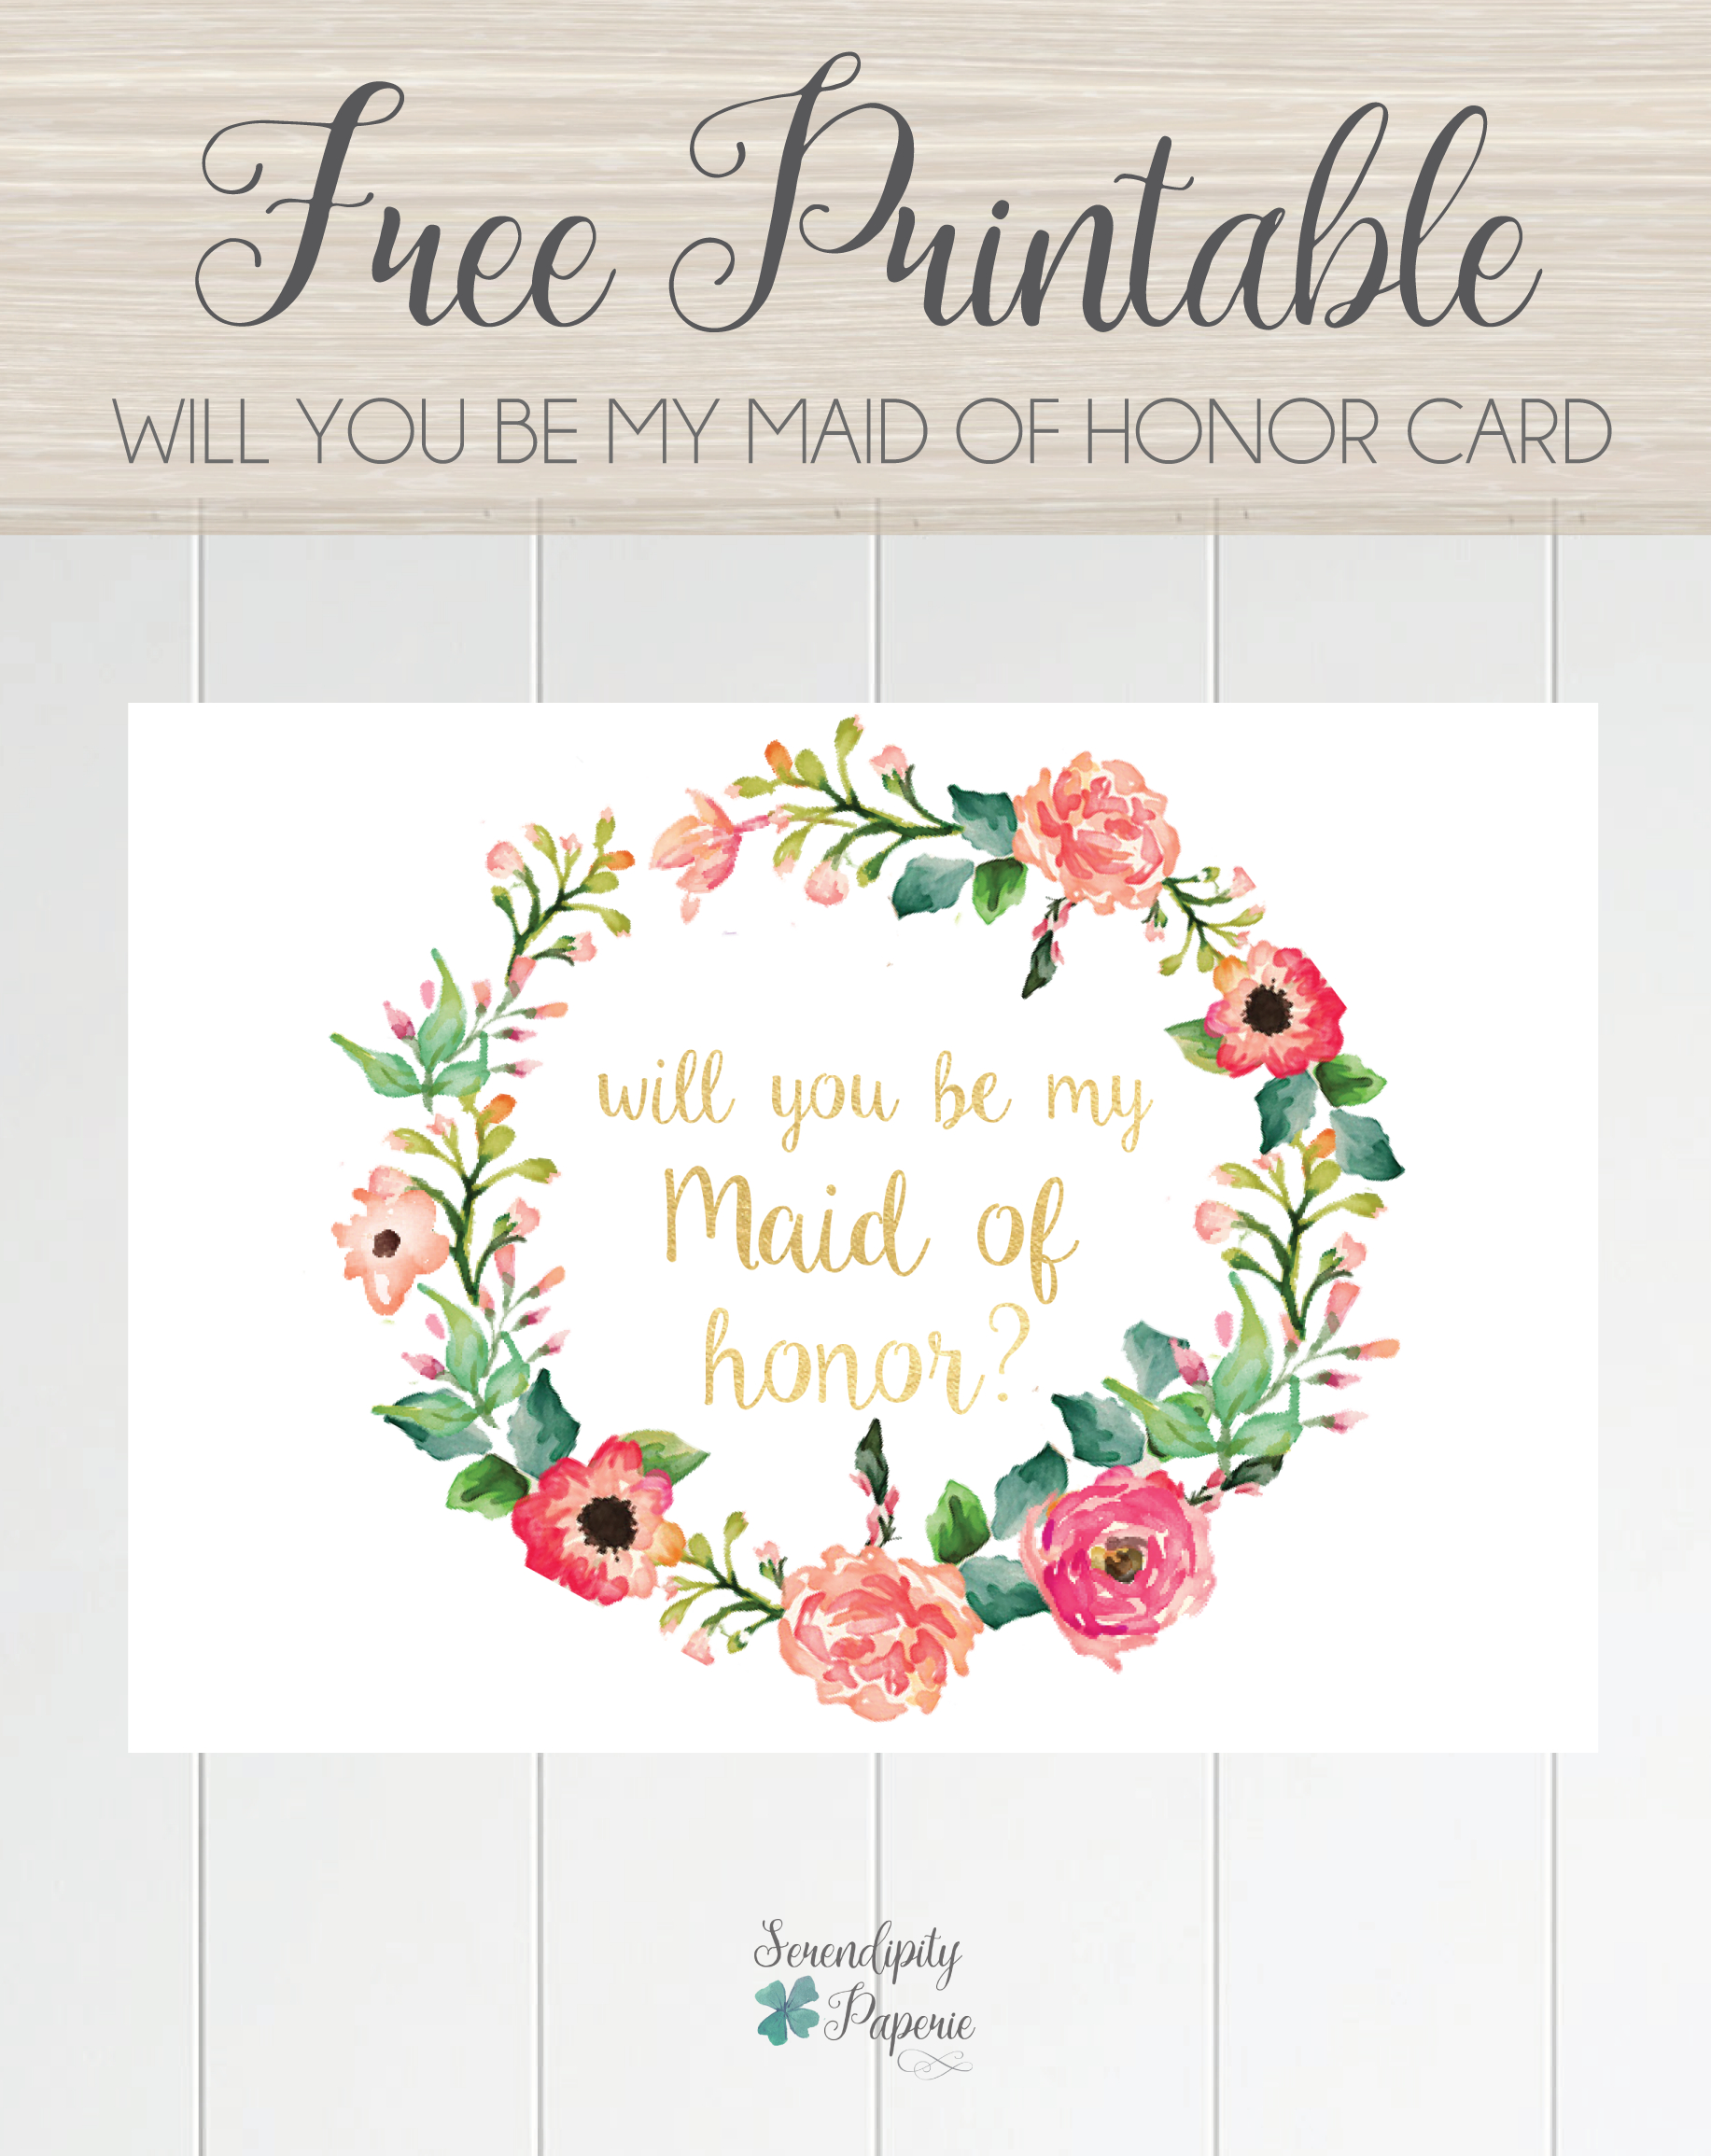 Will You Be My Bridesmaid Letter Template - Free Printable Will You Be My Maid Of Honor Card Floral Wreath